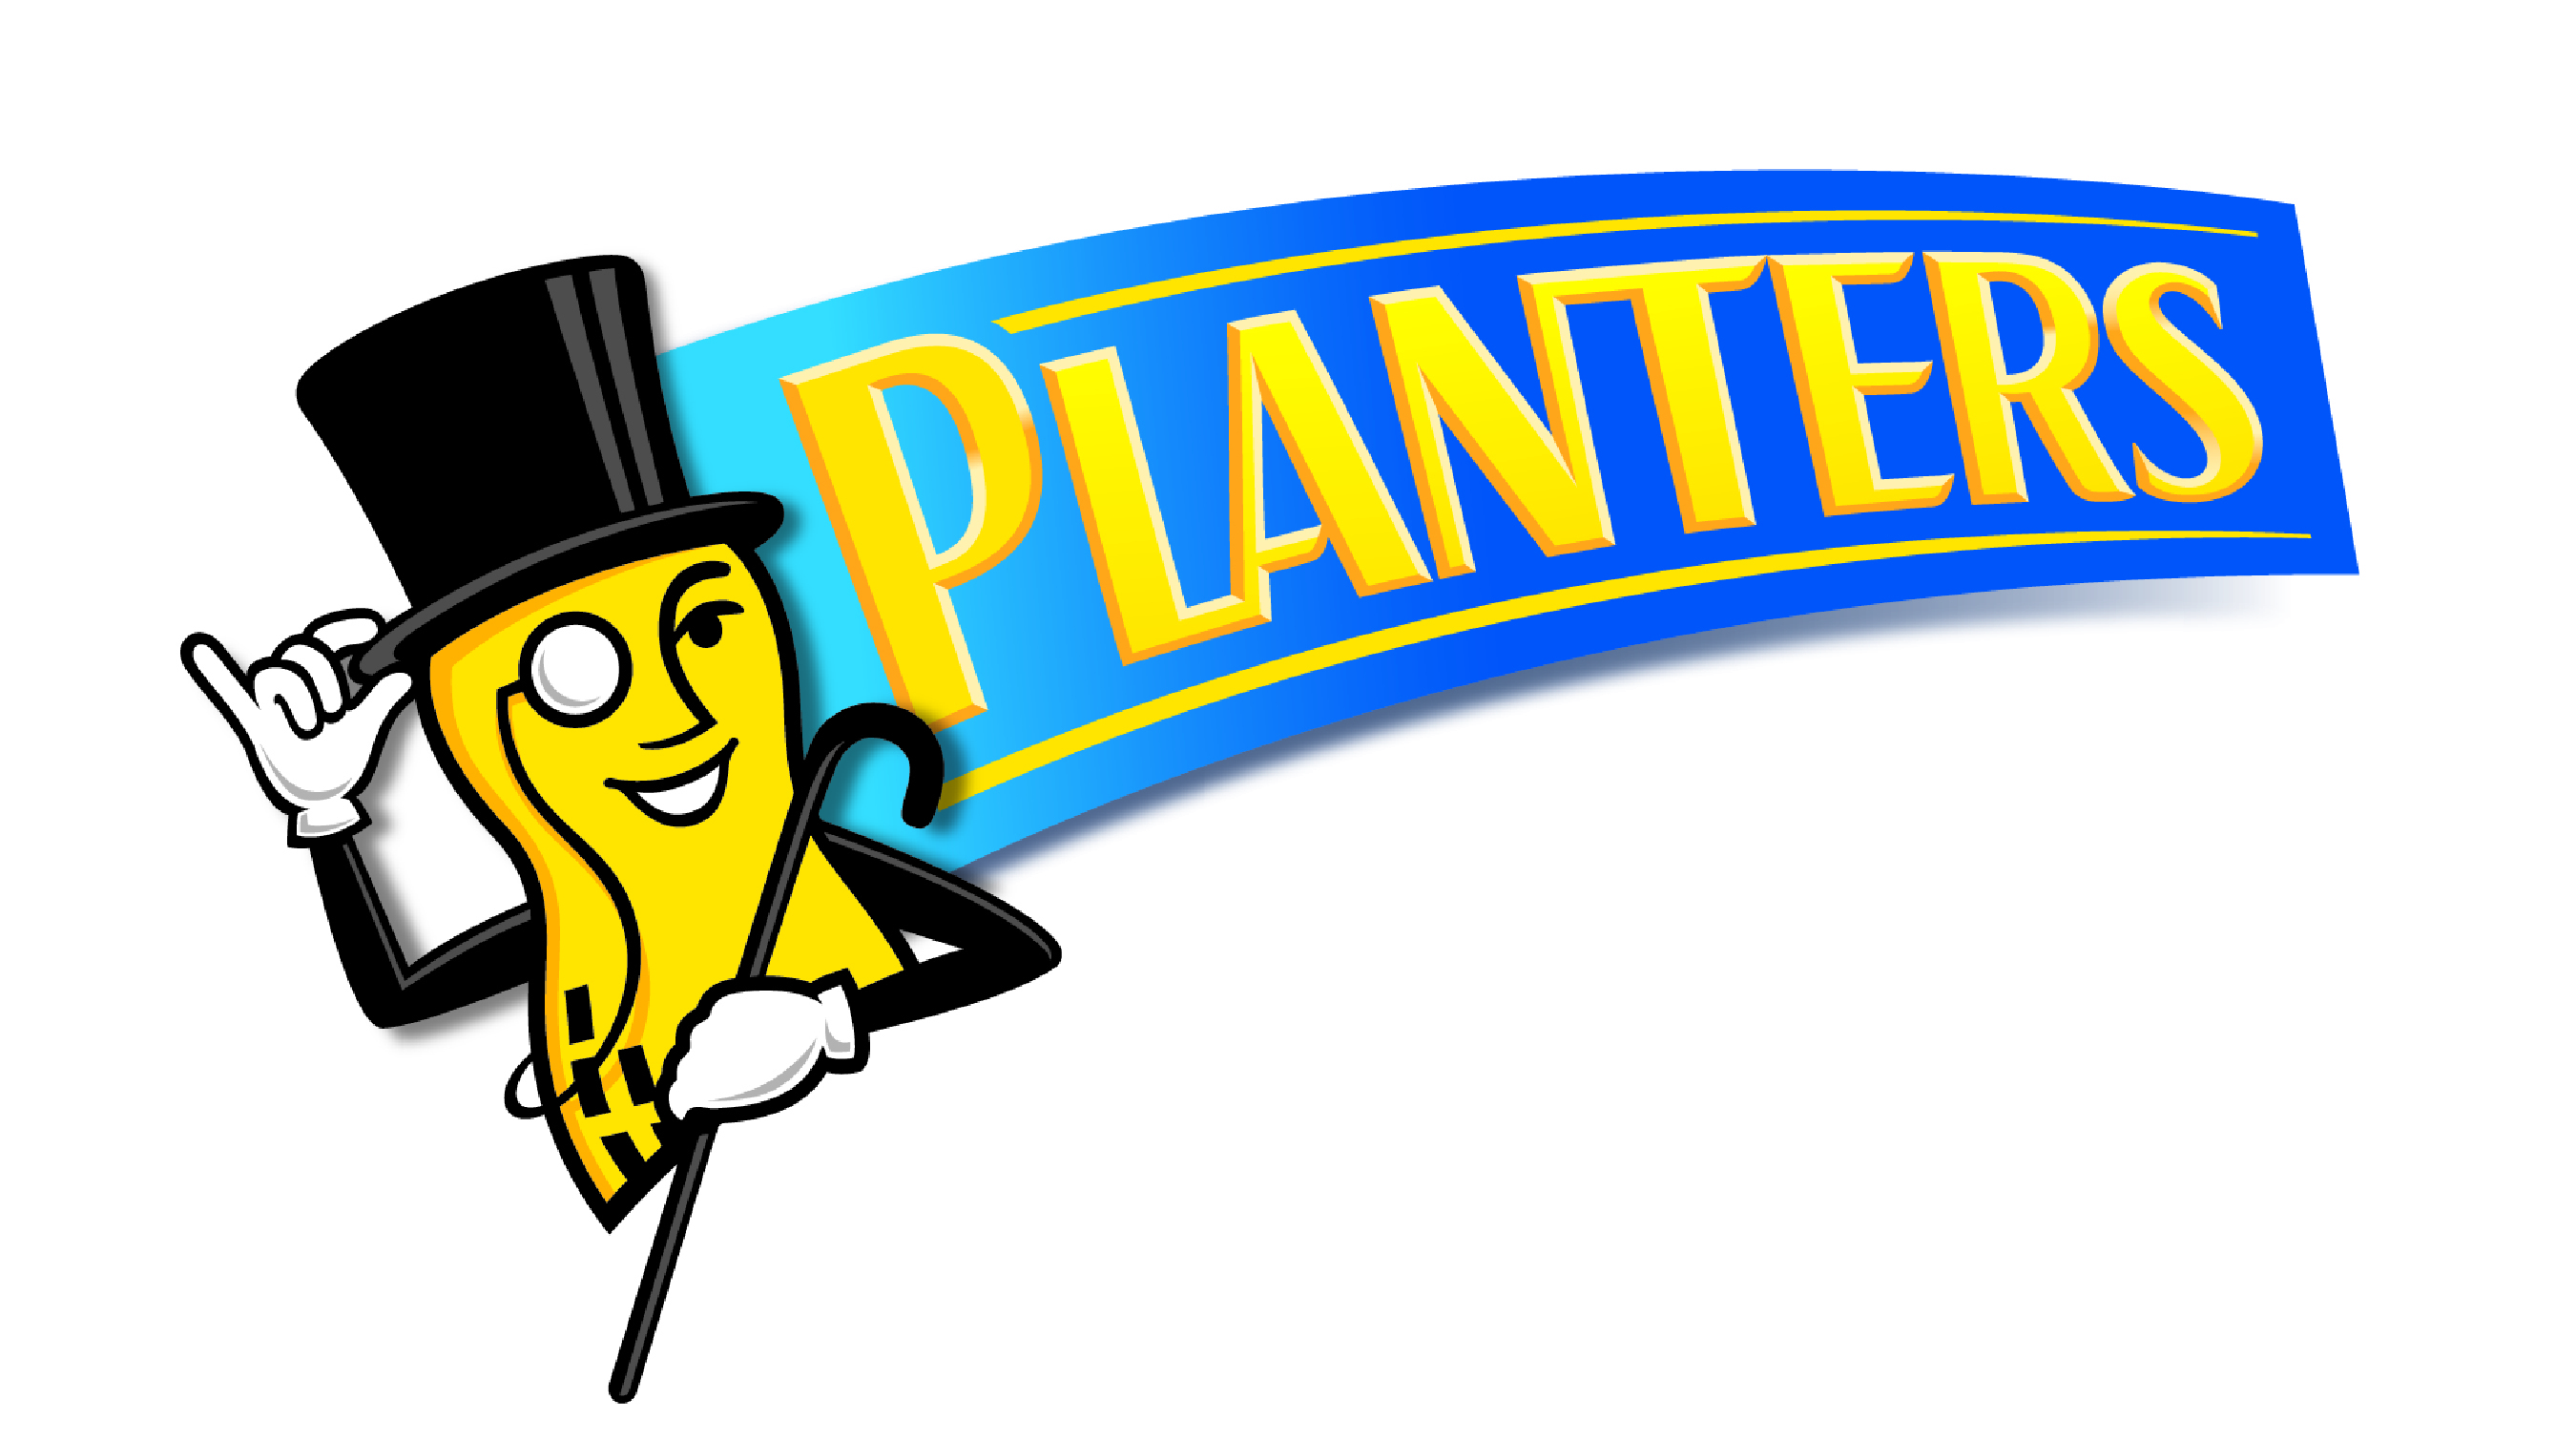 Planters logo (PRNewsFoto/Kraft Foods Group, Inc.)